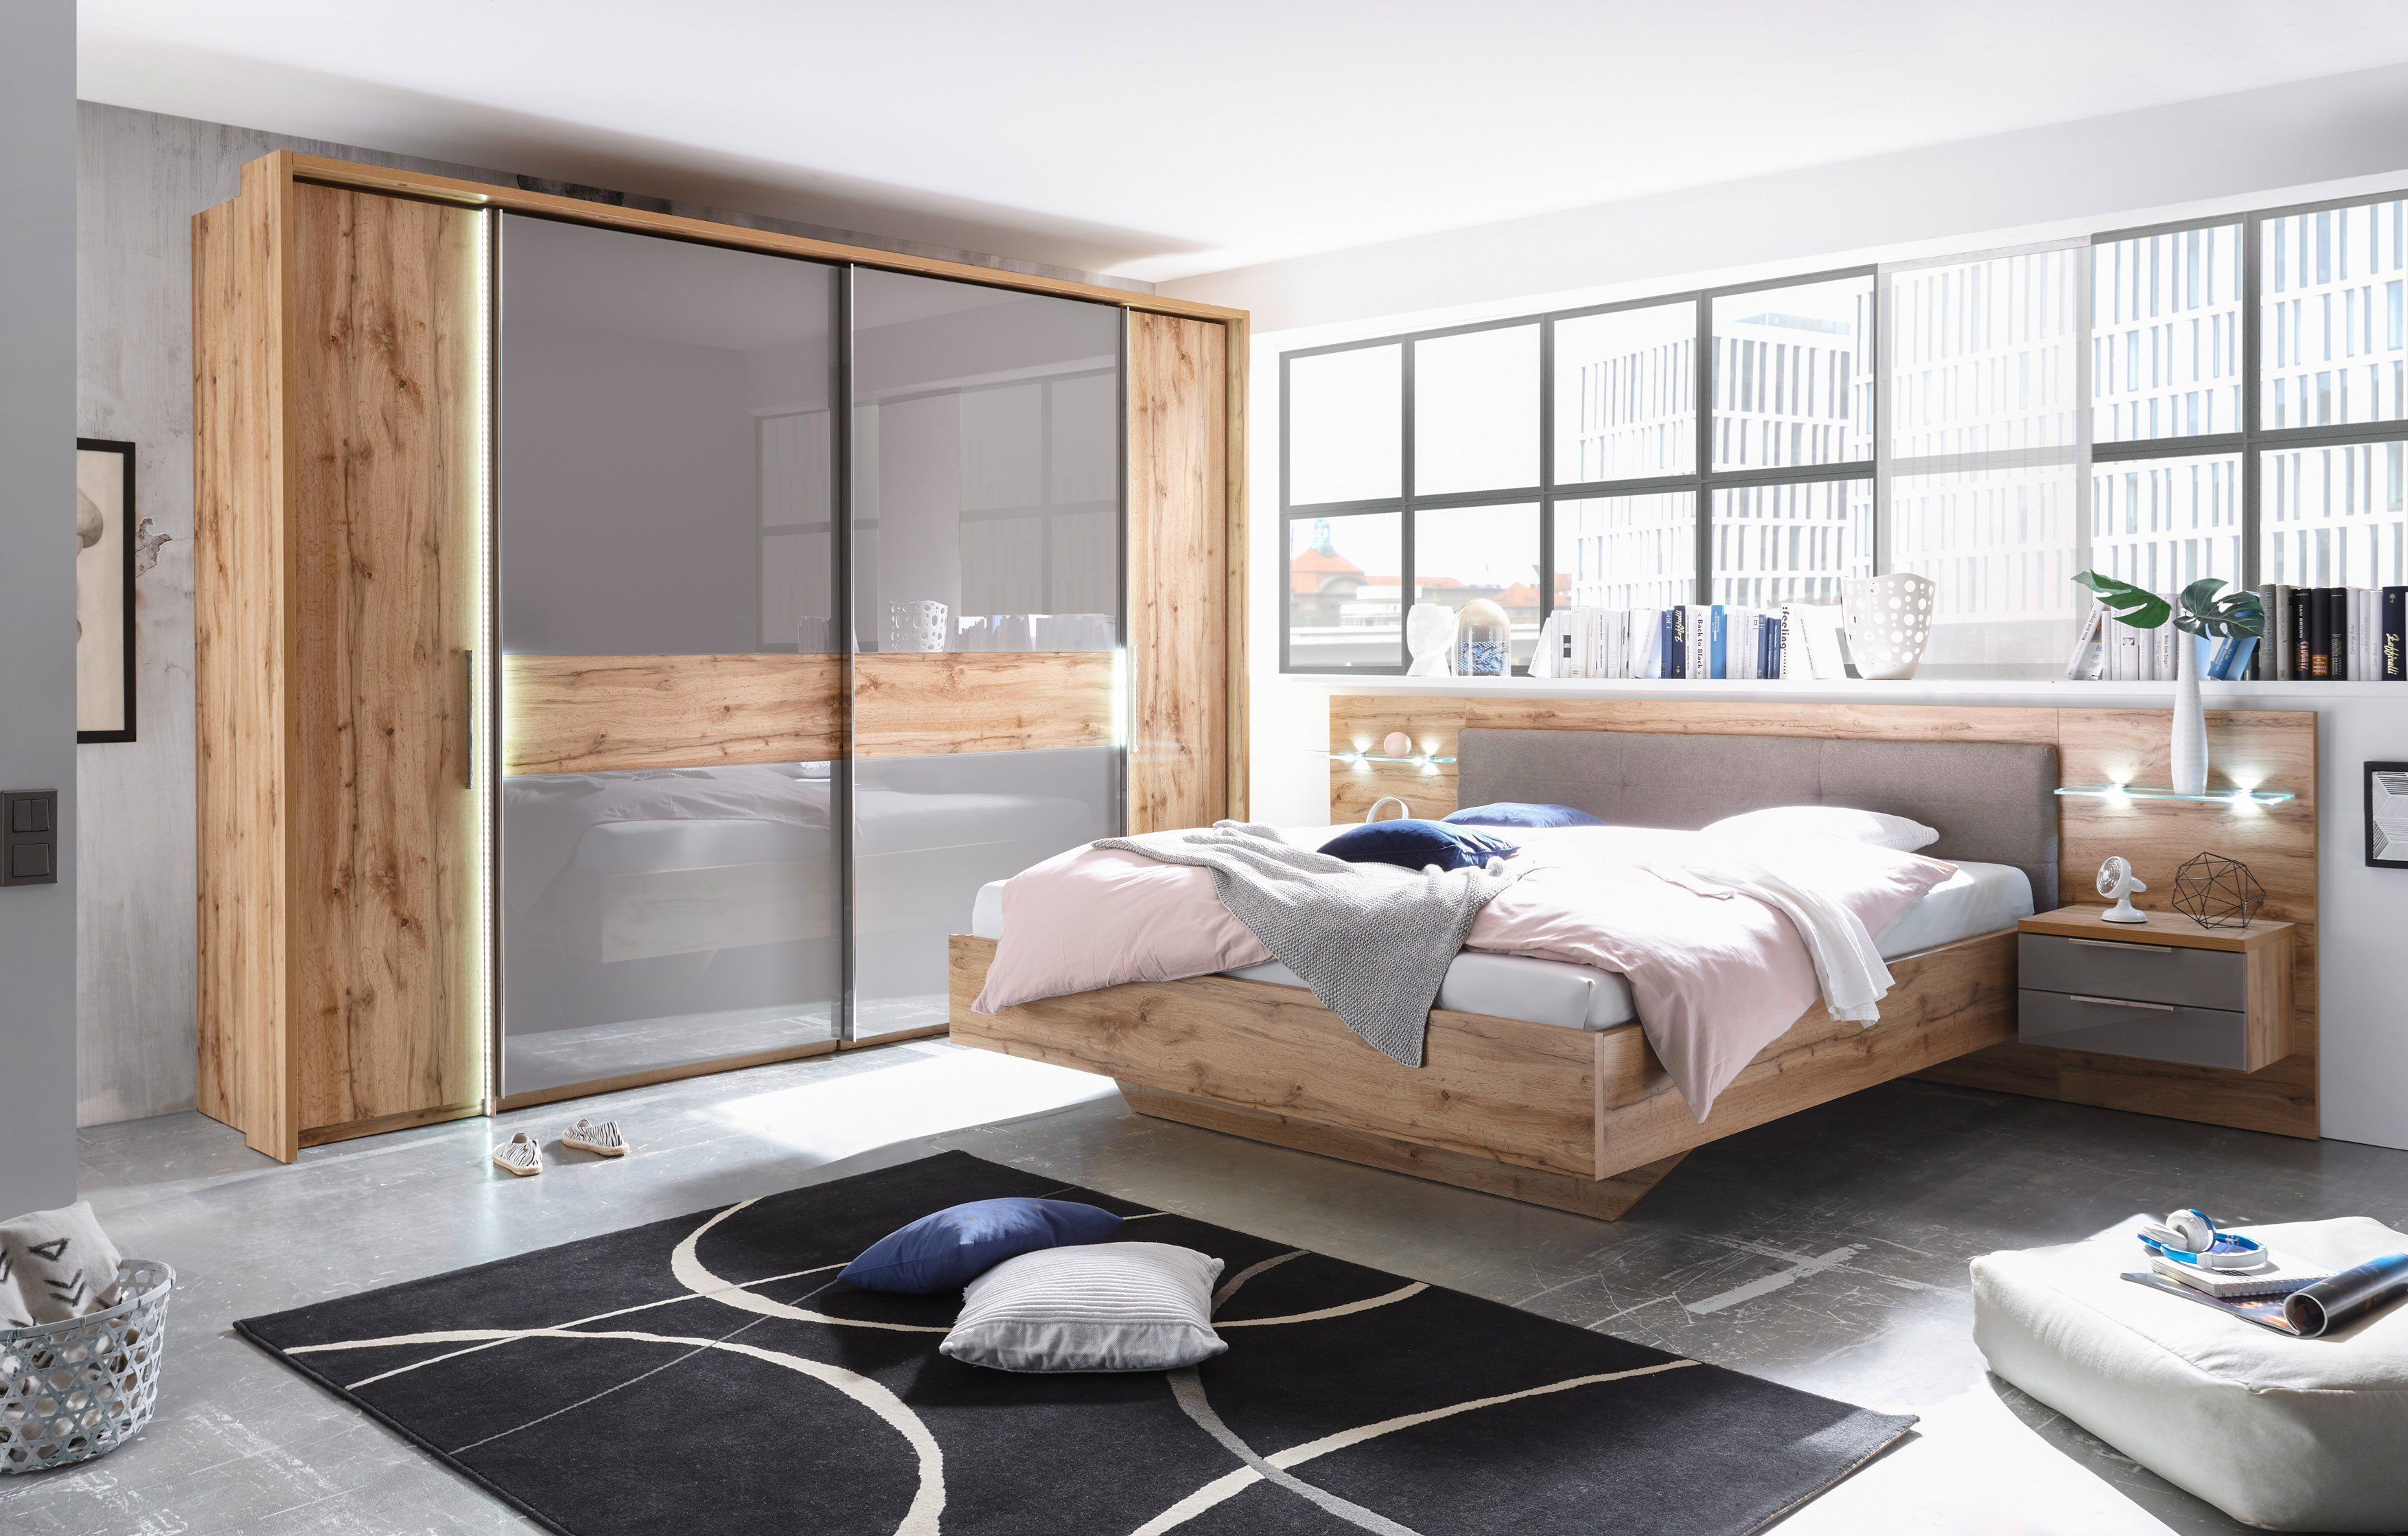 schlafkontor milano schlafzimmer wildeiche glas basalt m bel letz ihr online shop. Black Bedroom Furniture Sets. Home Design Ideas